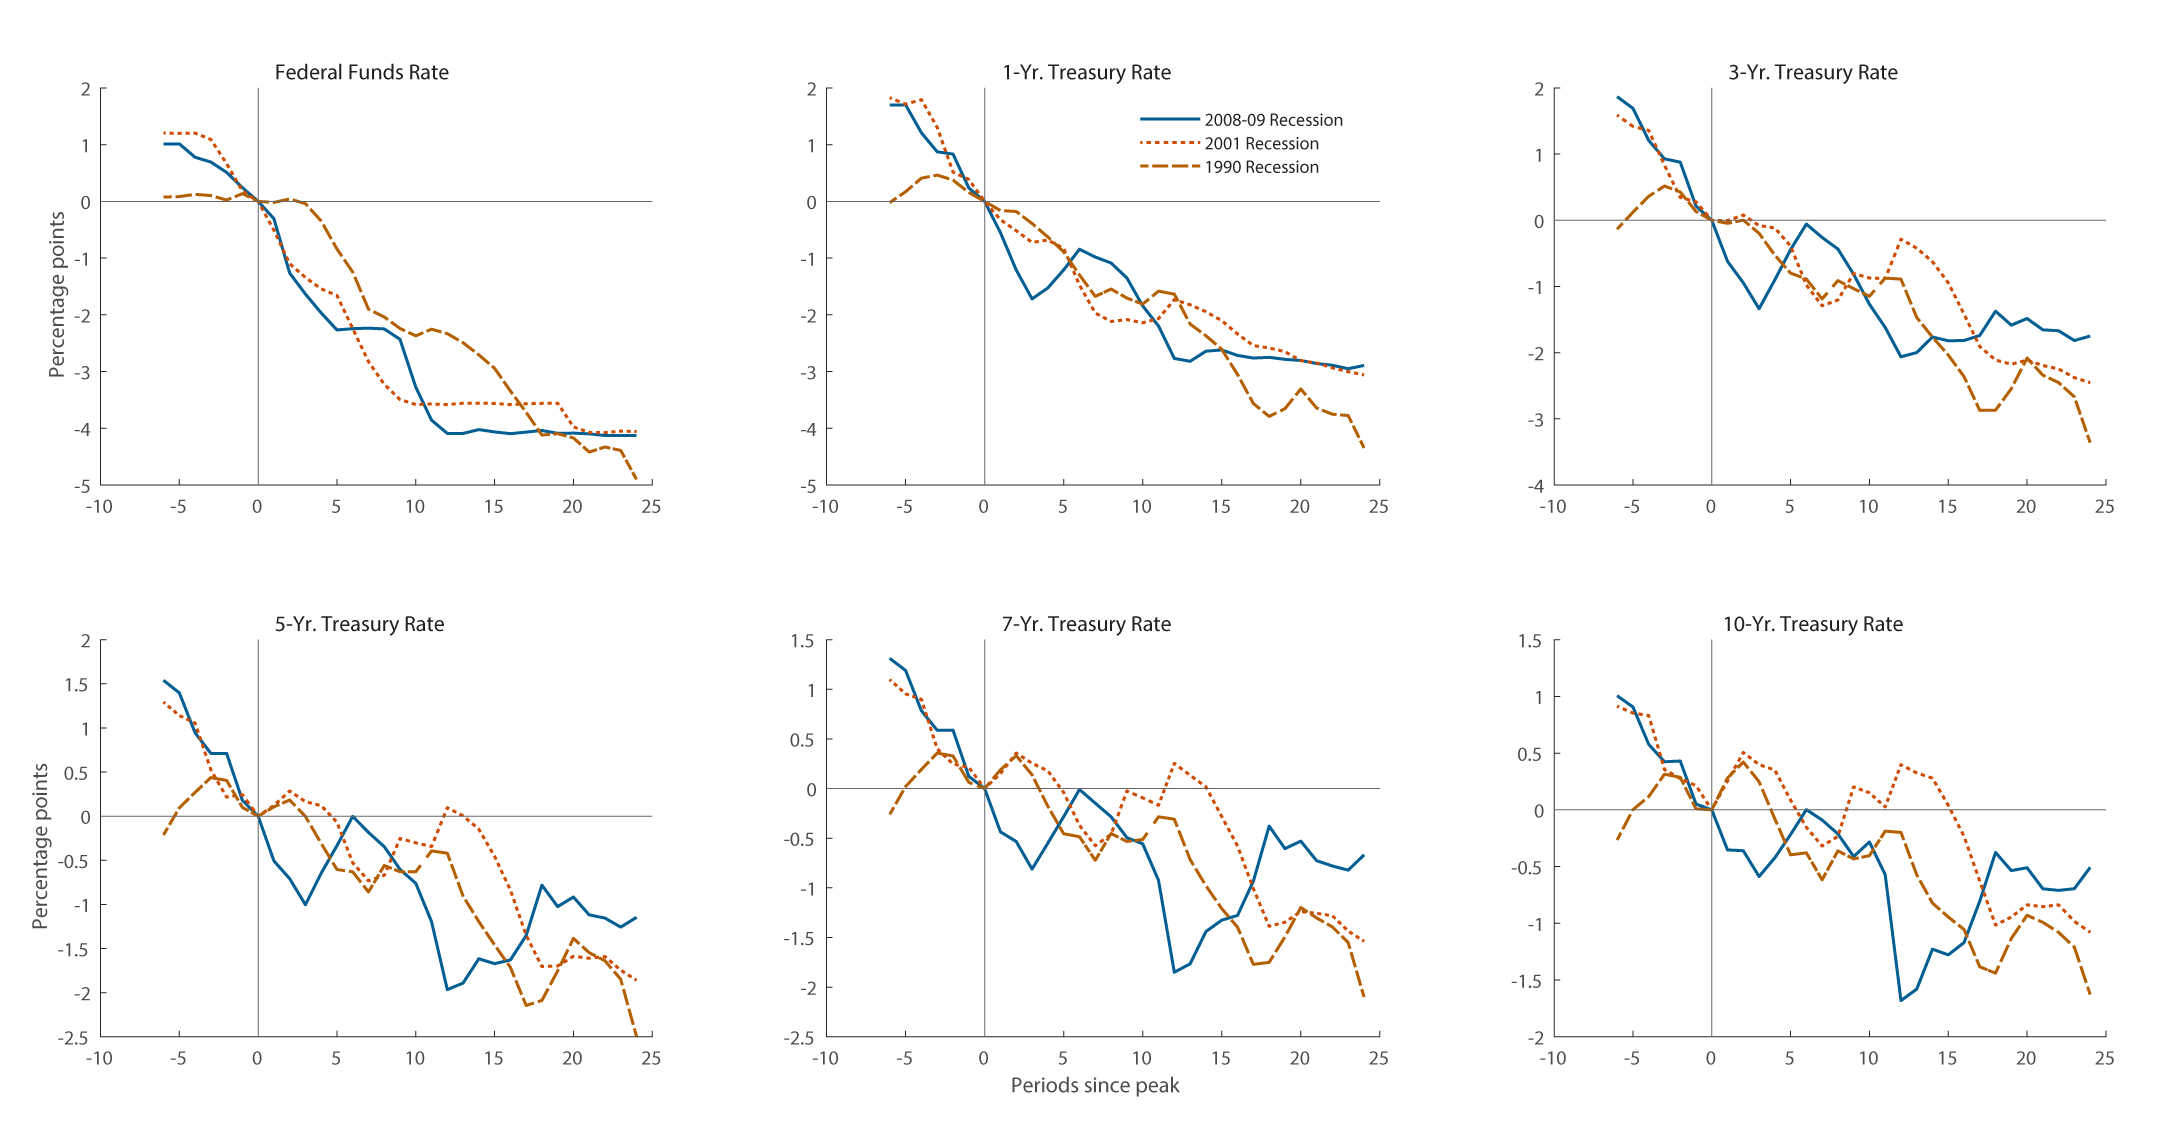 Figure 2. Changes in Nominal Interest Rates Around Recent Business Cycle Peaks. See accessible link for data description.